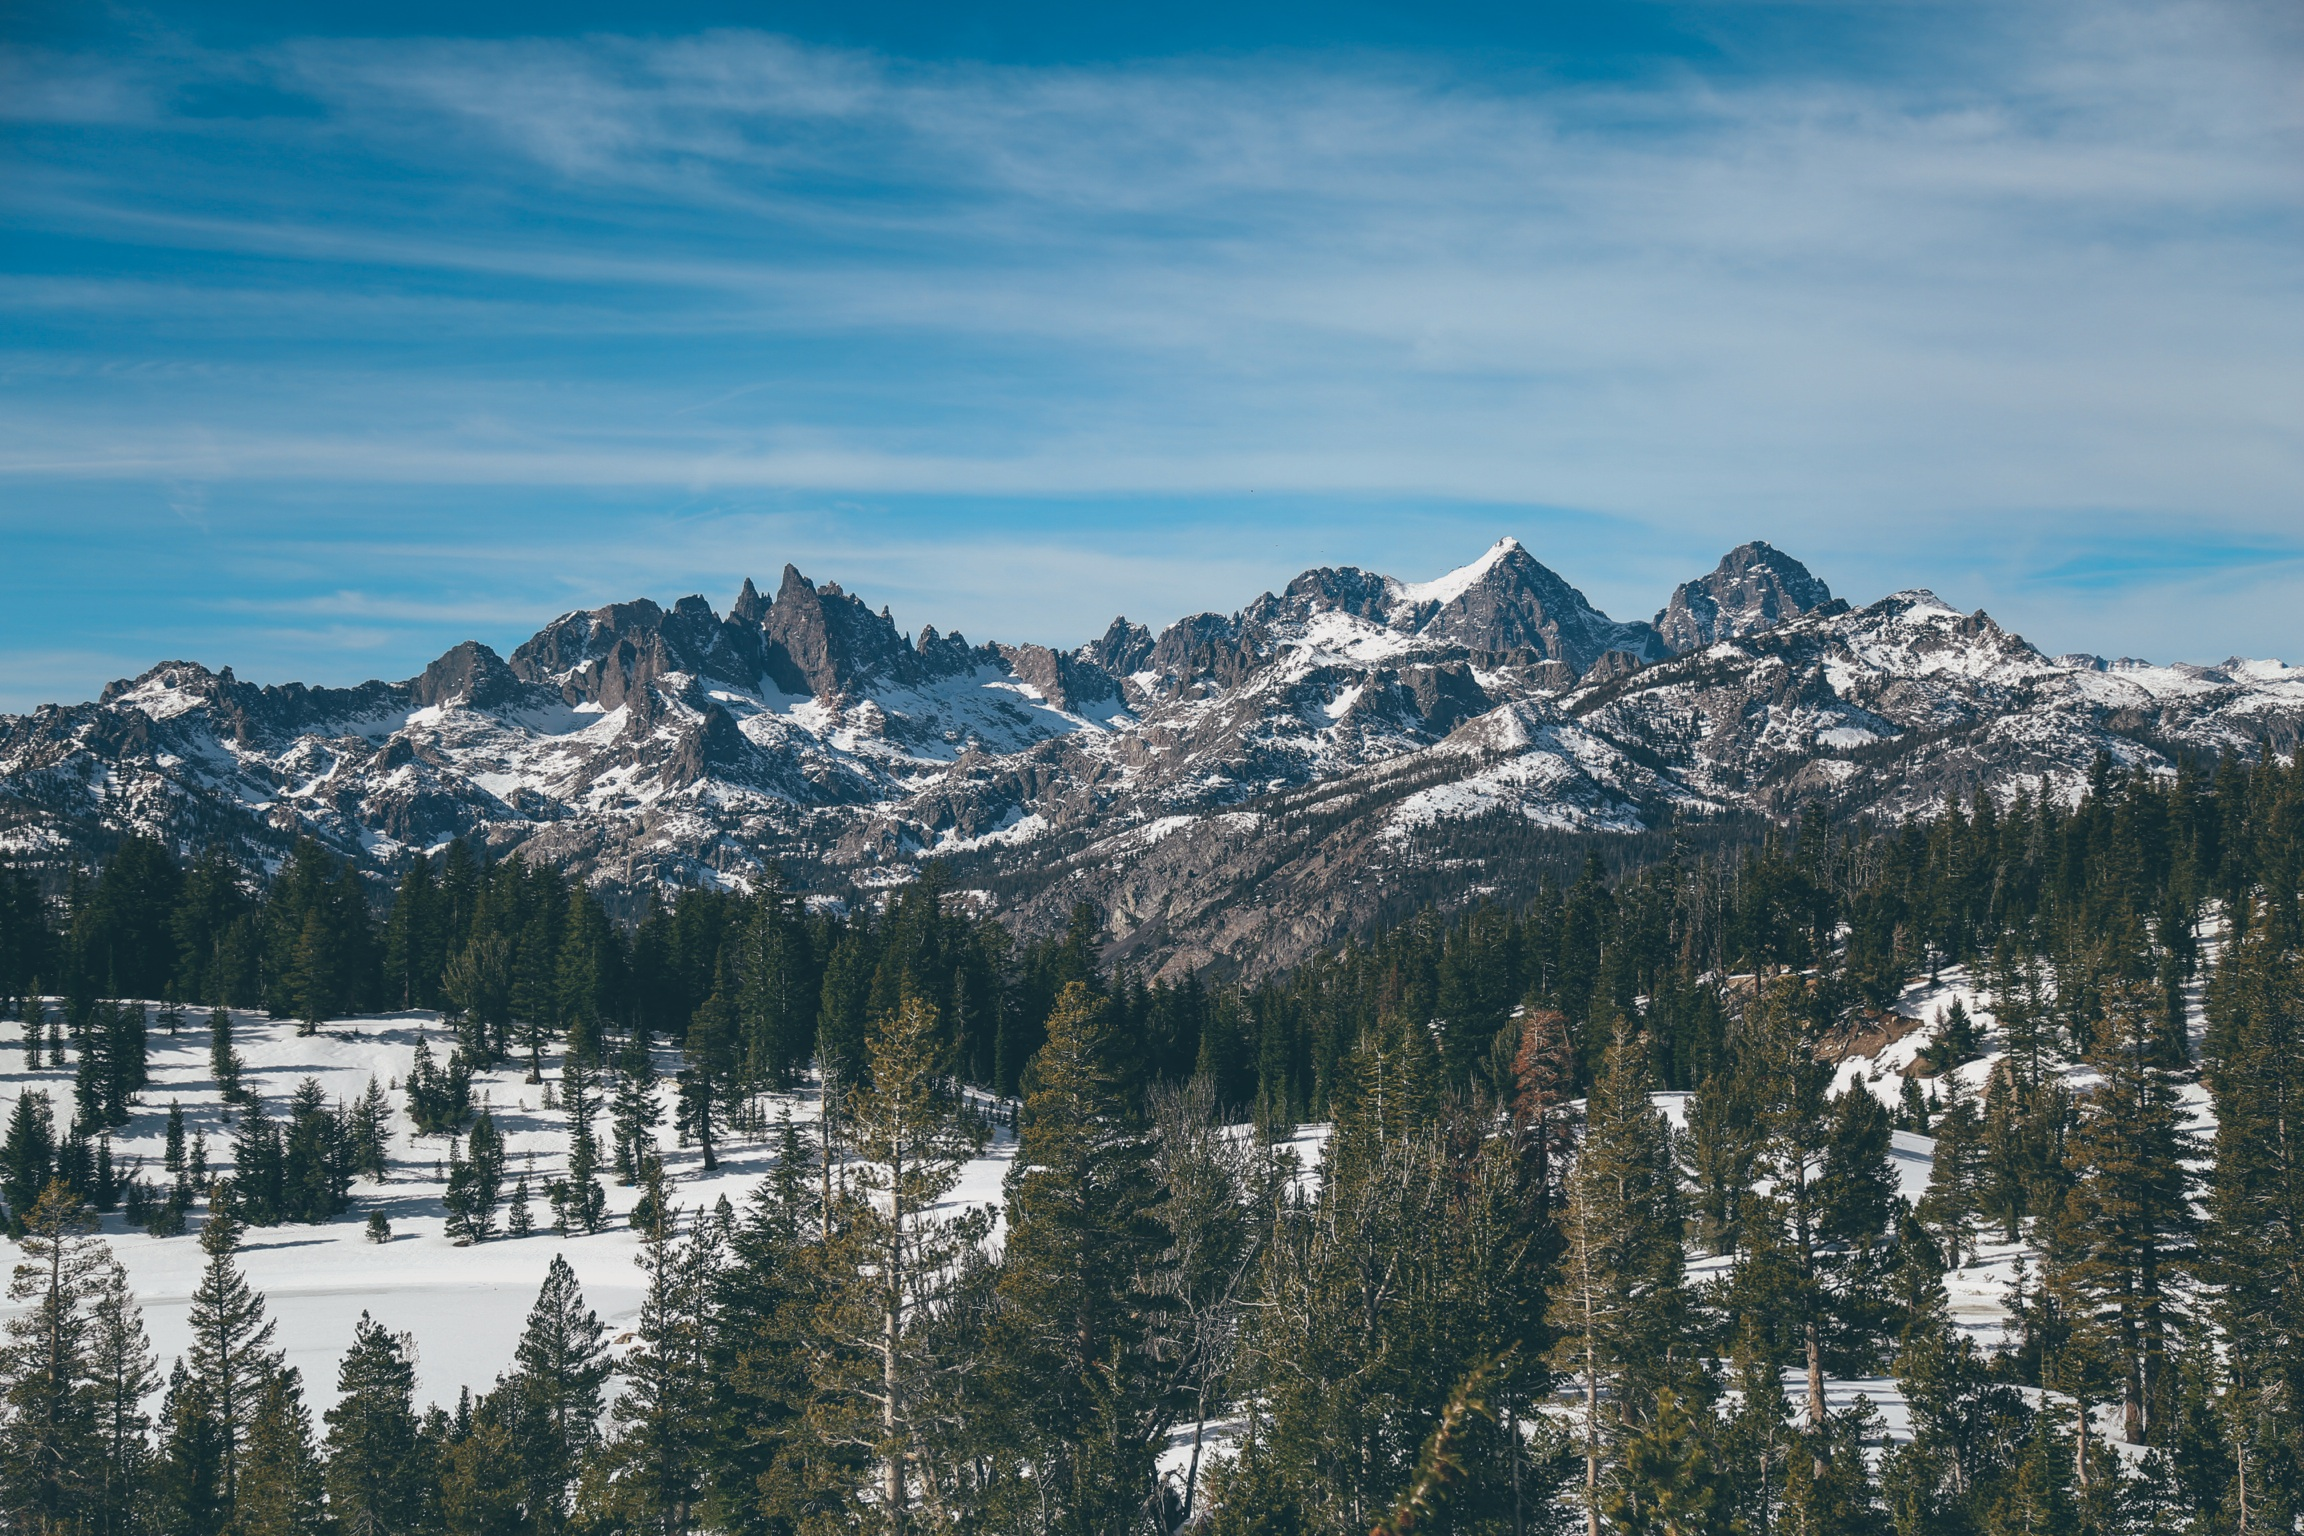 Ritter Range within the Ansel Adams Wilderness